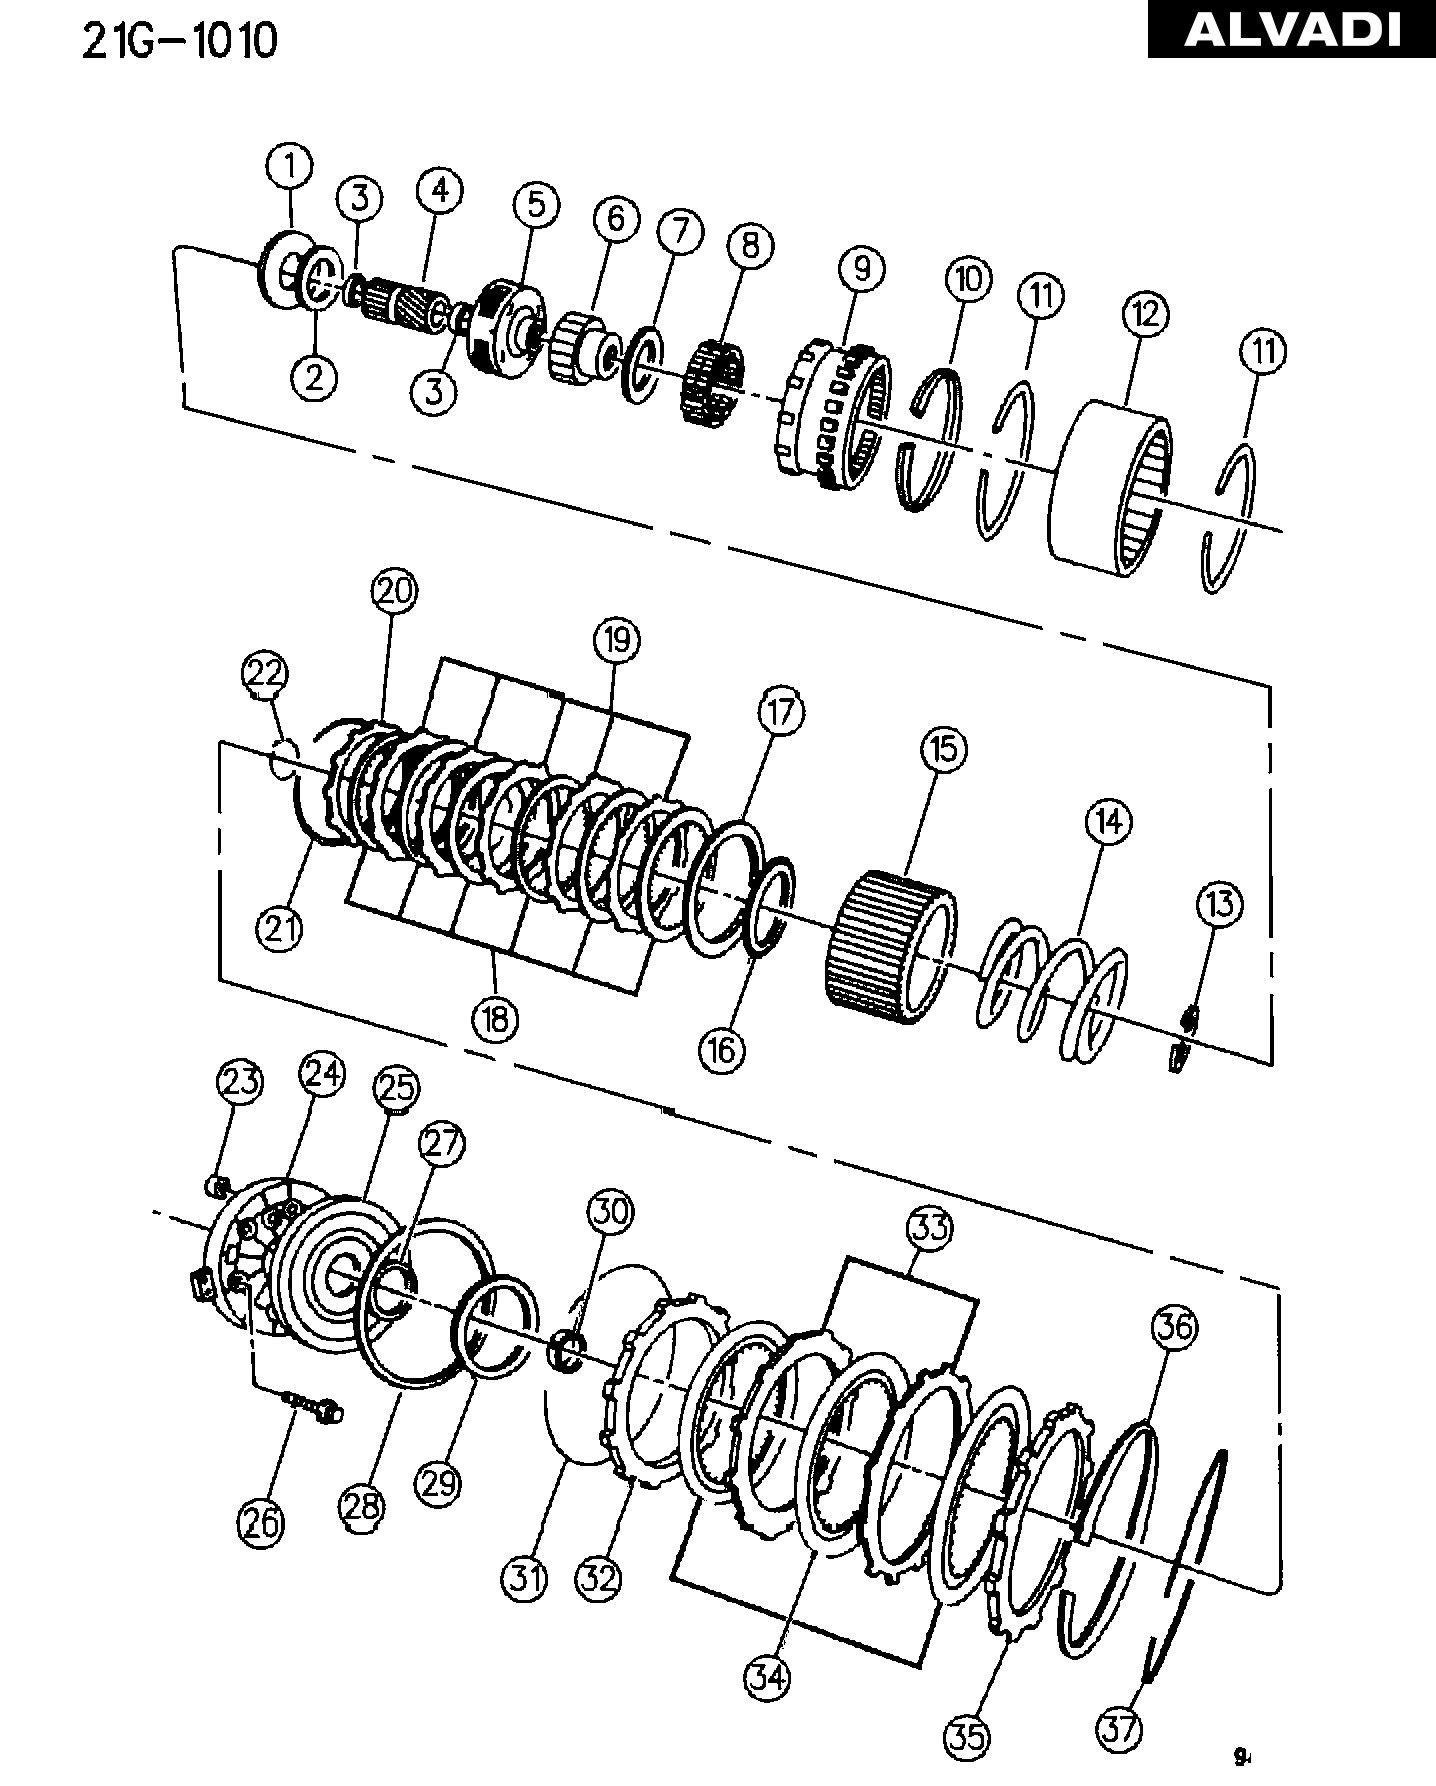 Manual Transmission Clutch Diagram Ram Clutch Overdrive